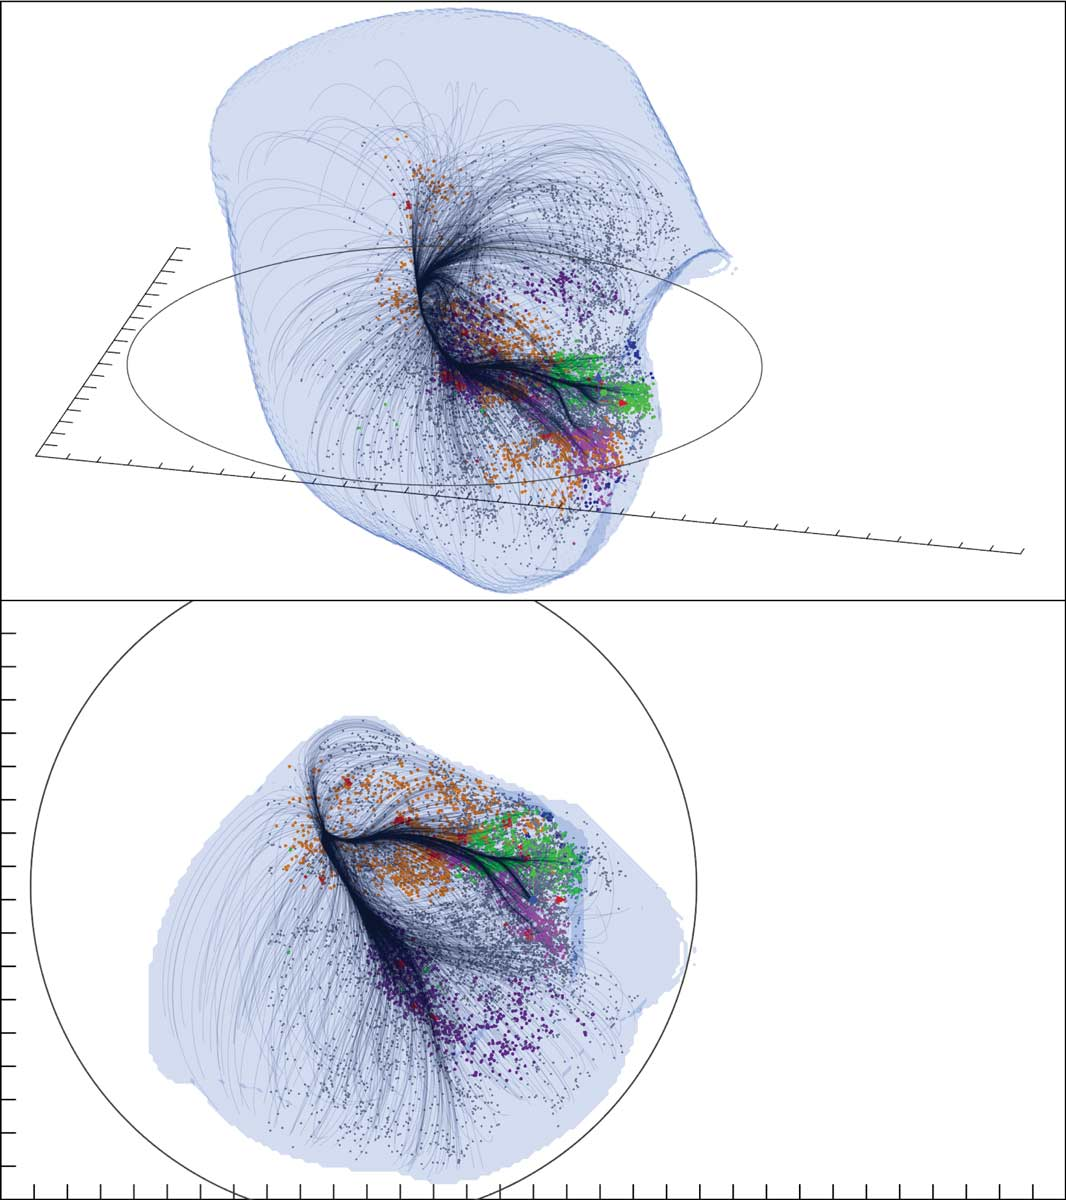 Two views of the Laniakea Supercluster